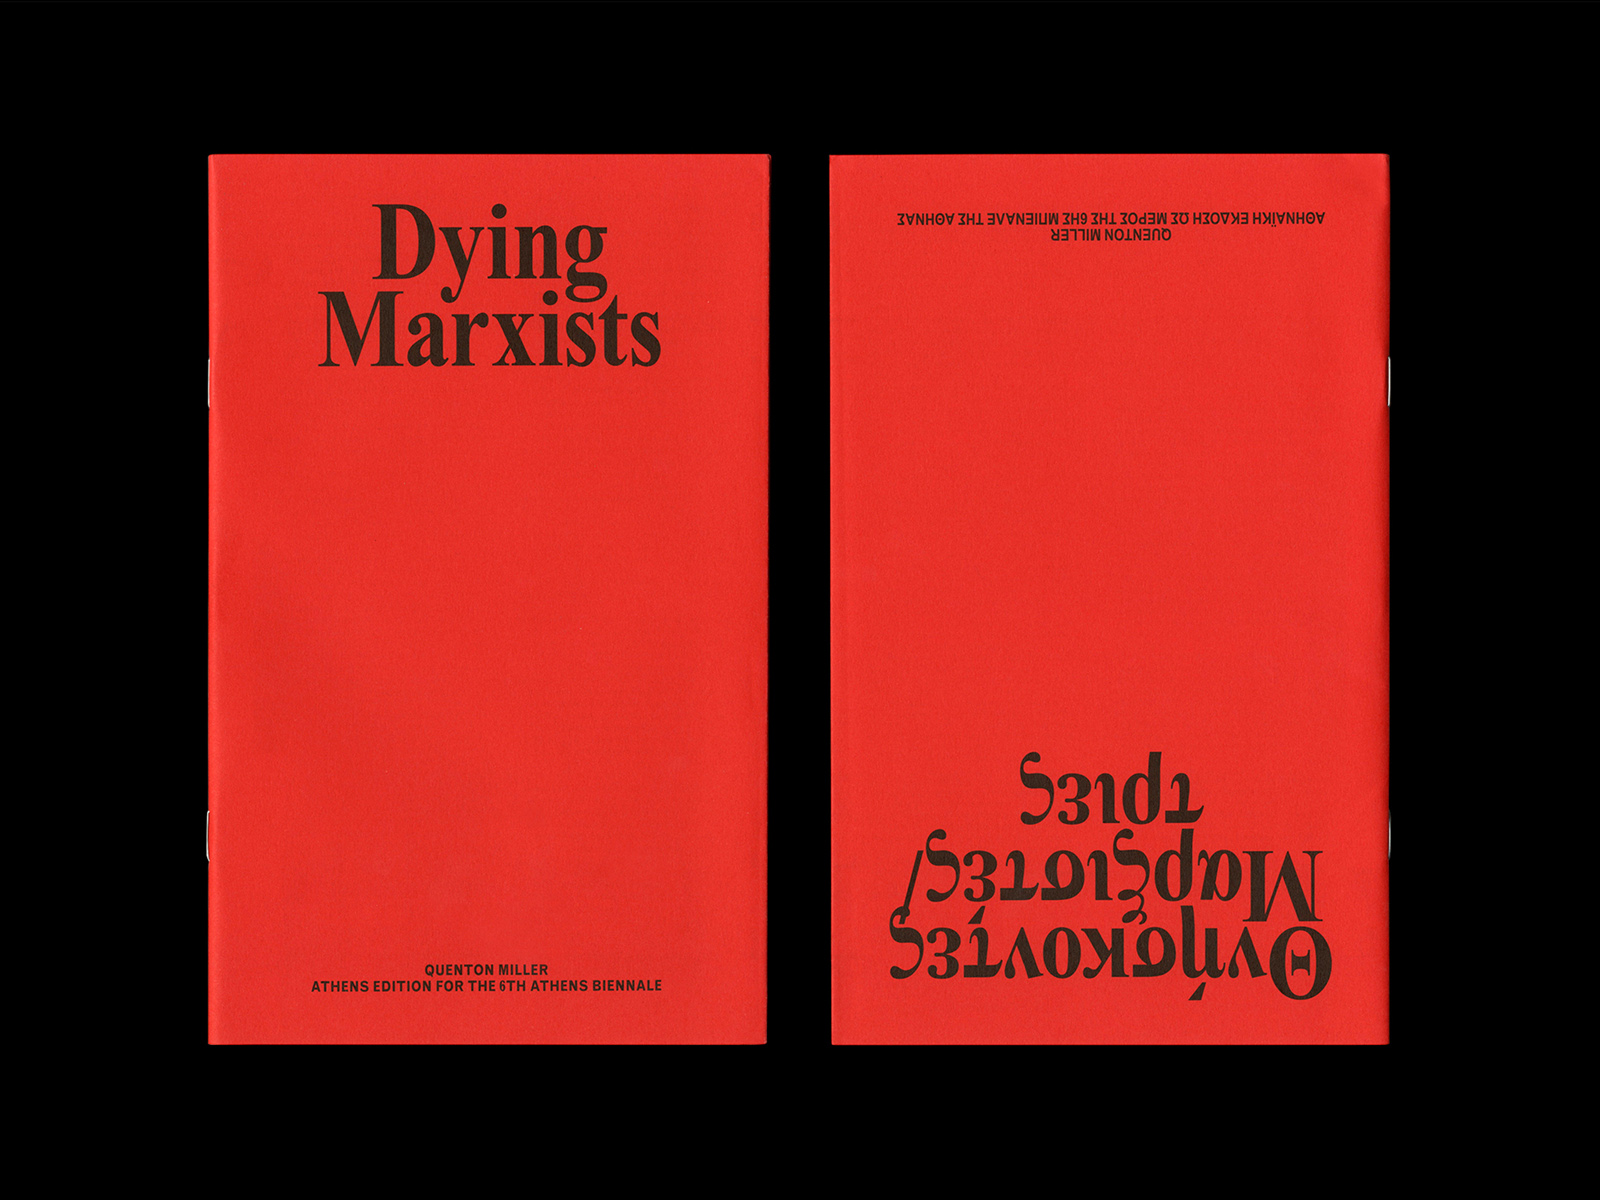 Quenton Miller Dying Marxists at 6th Athens Biennale publication cover design